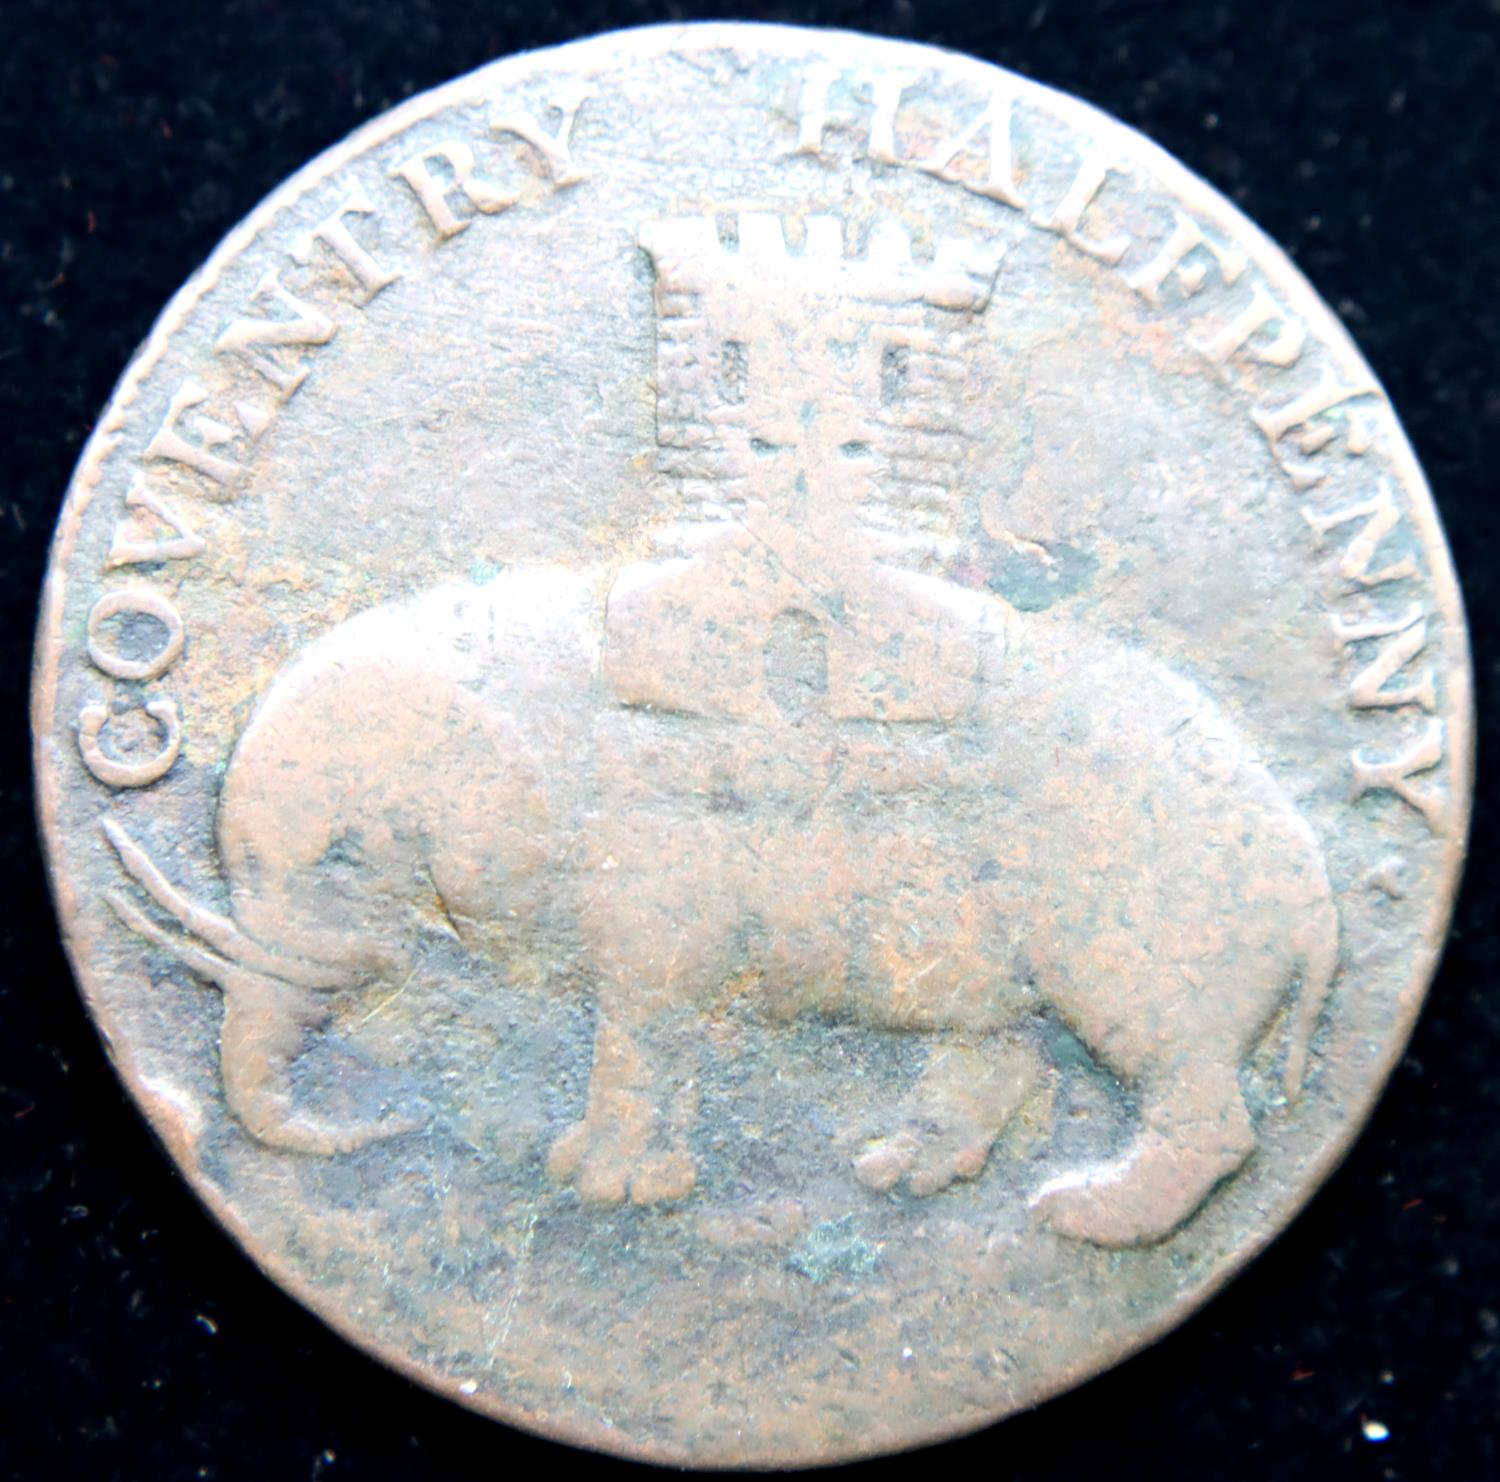 1799 - Copper Half Penny for Coventry - Castle/Elephant. P&P Group 1 (£14+VAT for the first lot - Image 2 of 2